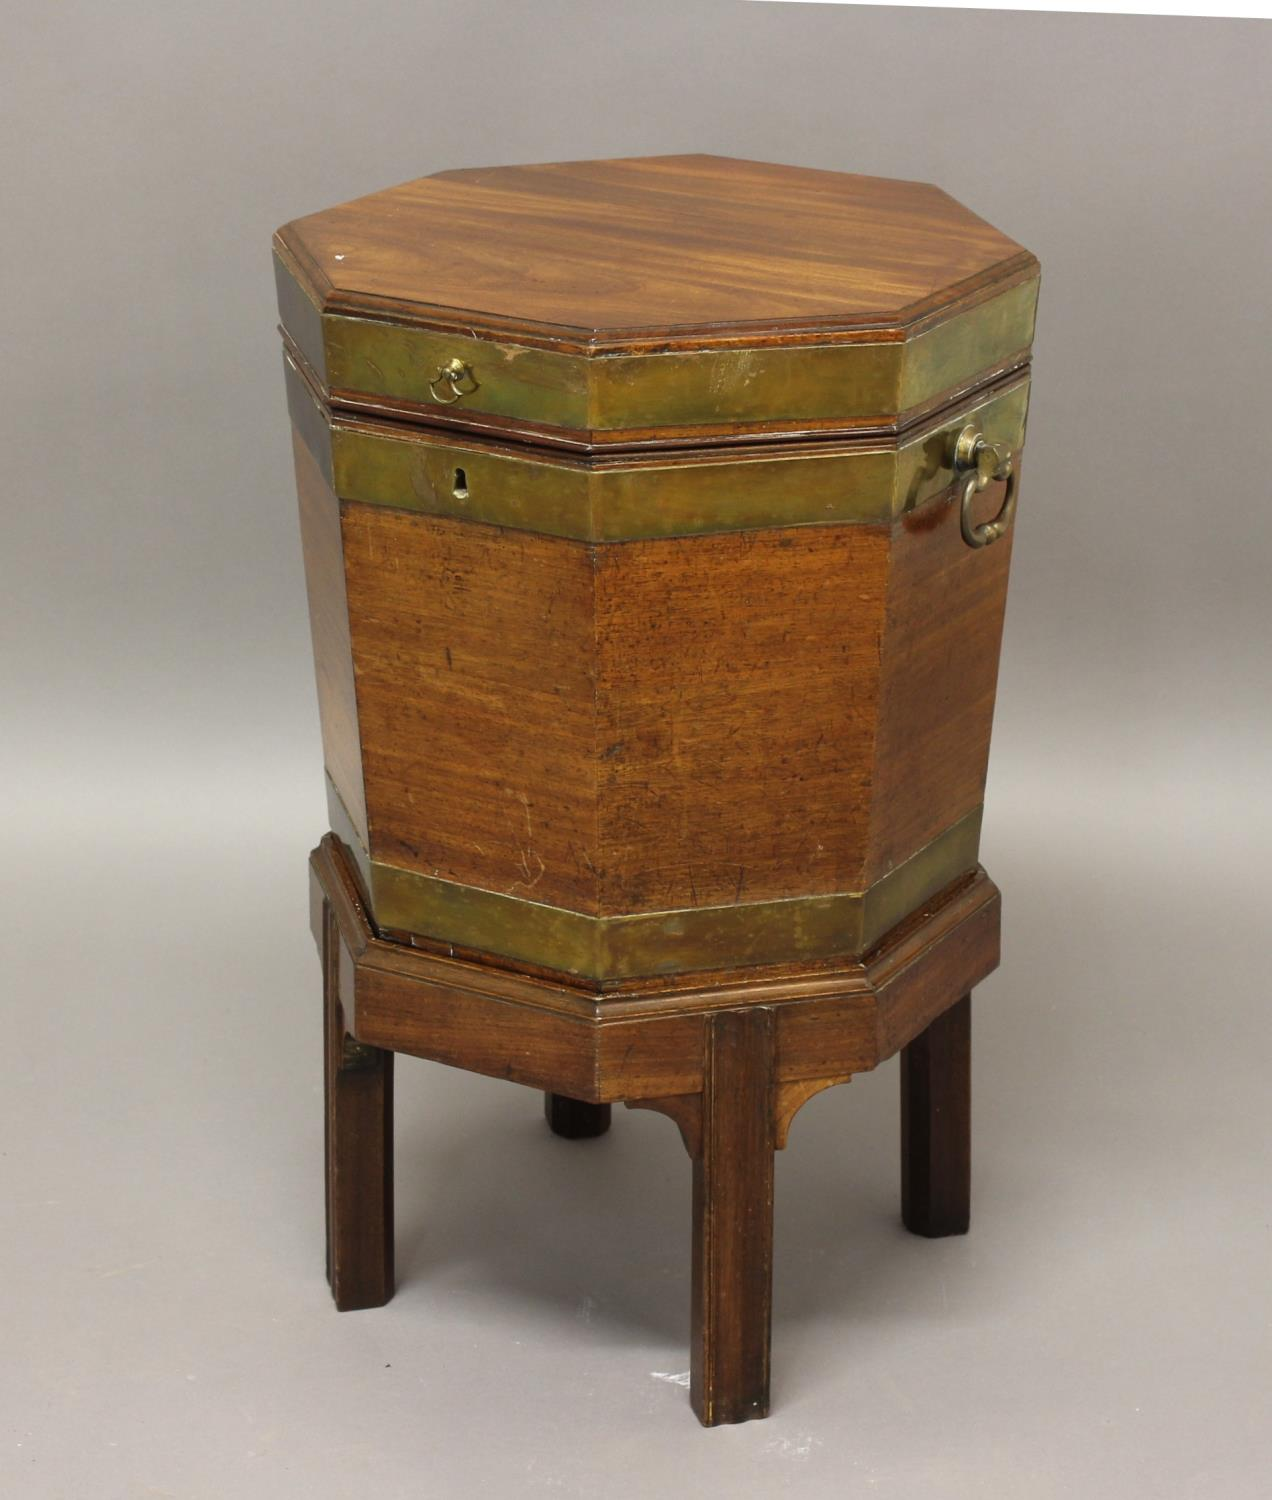 A GEORGE III BRASS BOUND MAHOGANY WINE COOLER ON STAND, of octagonal form with lead lined